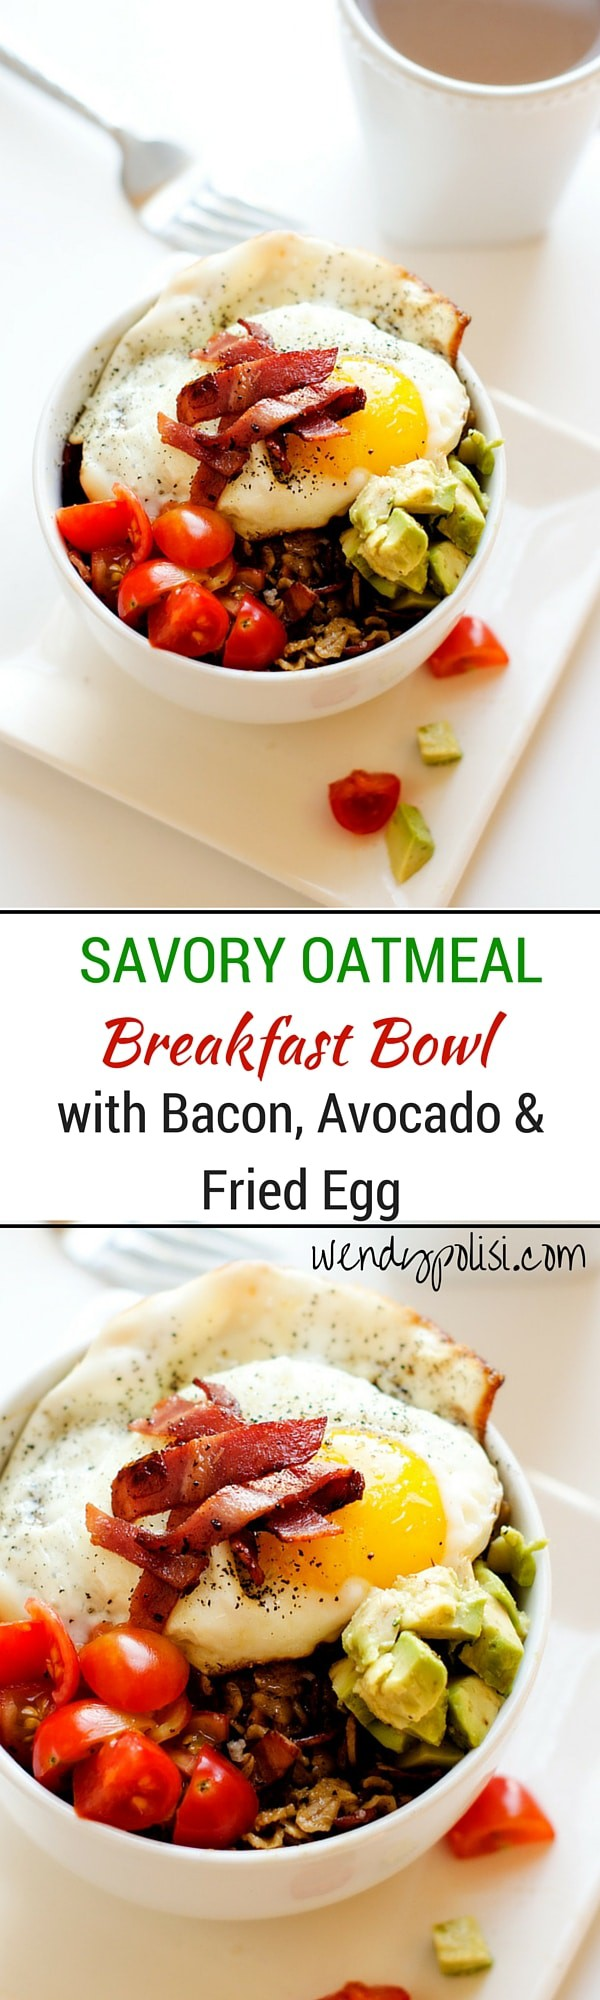 Savory Oatmeal Breakfast Bowl with Bacon, Avocado & Fried Egg -  This savory oatmeal breakfast bowl will rock your world!  Bring your best bowl with bacon, avocado and egg. - WendyPolisi.com